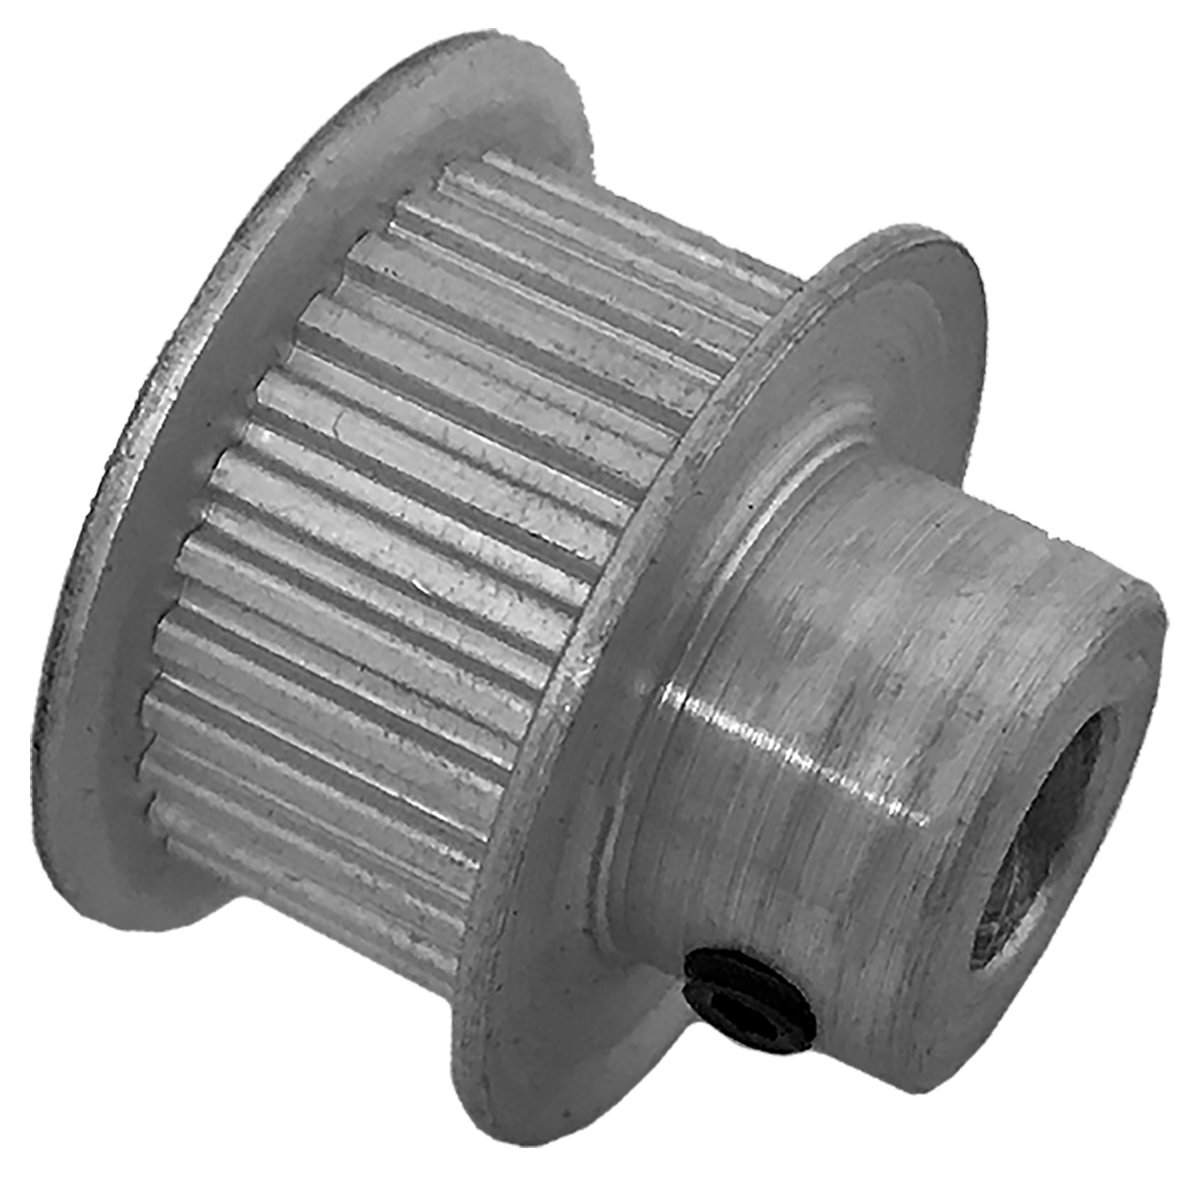 28LT312-6FA3 - Aluminum Imperial Pitch Pulleys